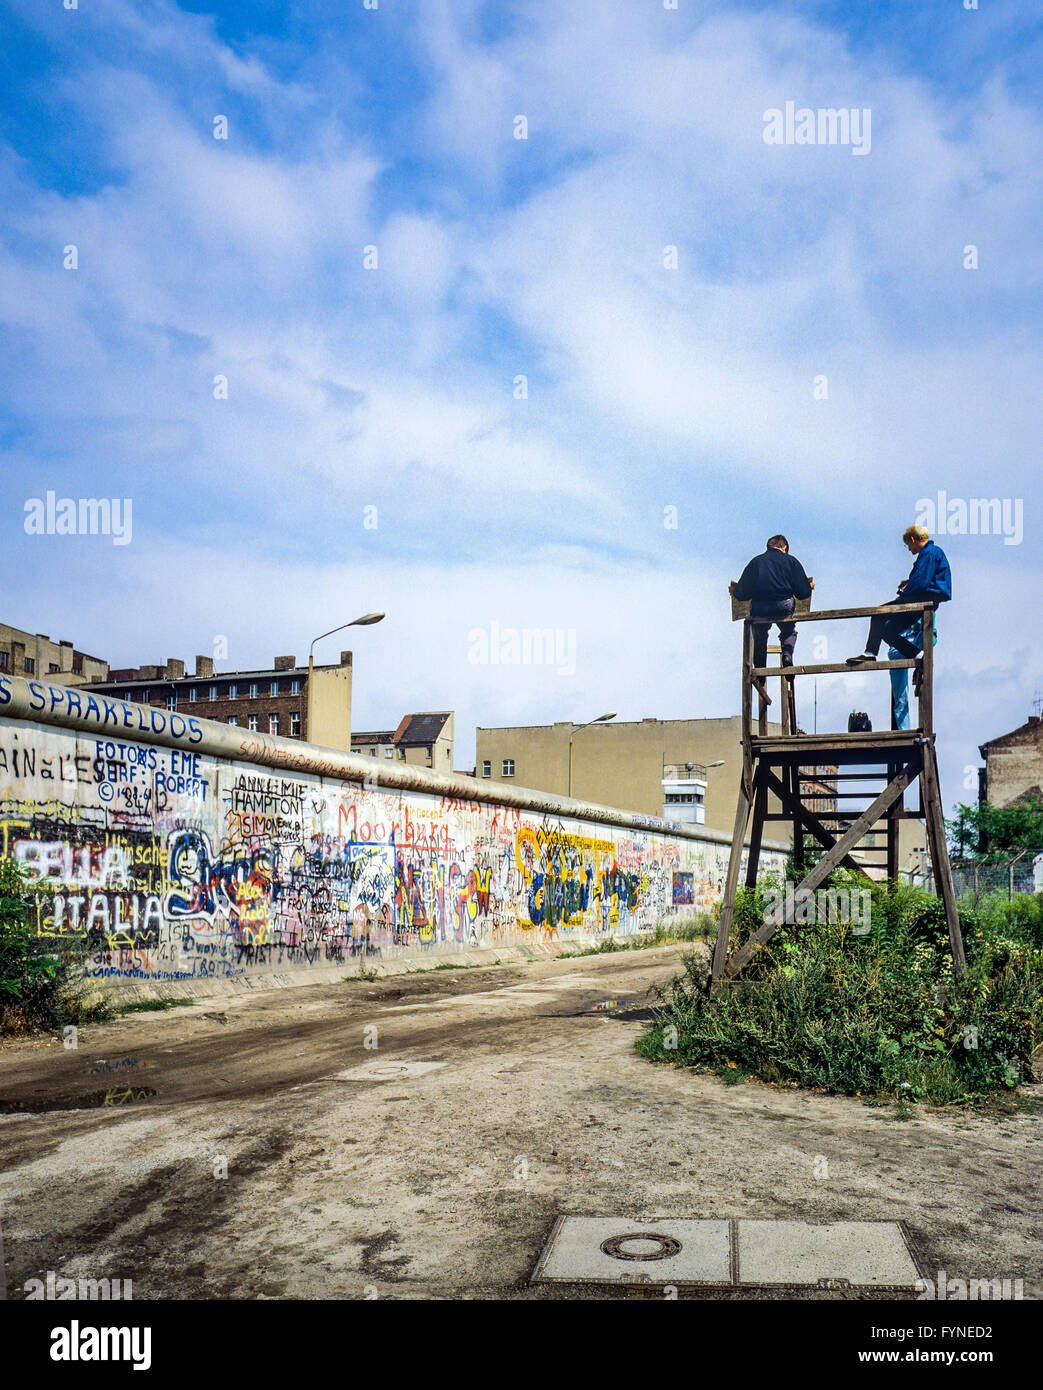 August 1986, Berlin Wall graffitis, people on observation platform looking over the Wall, Zimmerstrasse street, - Stock Image